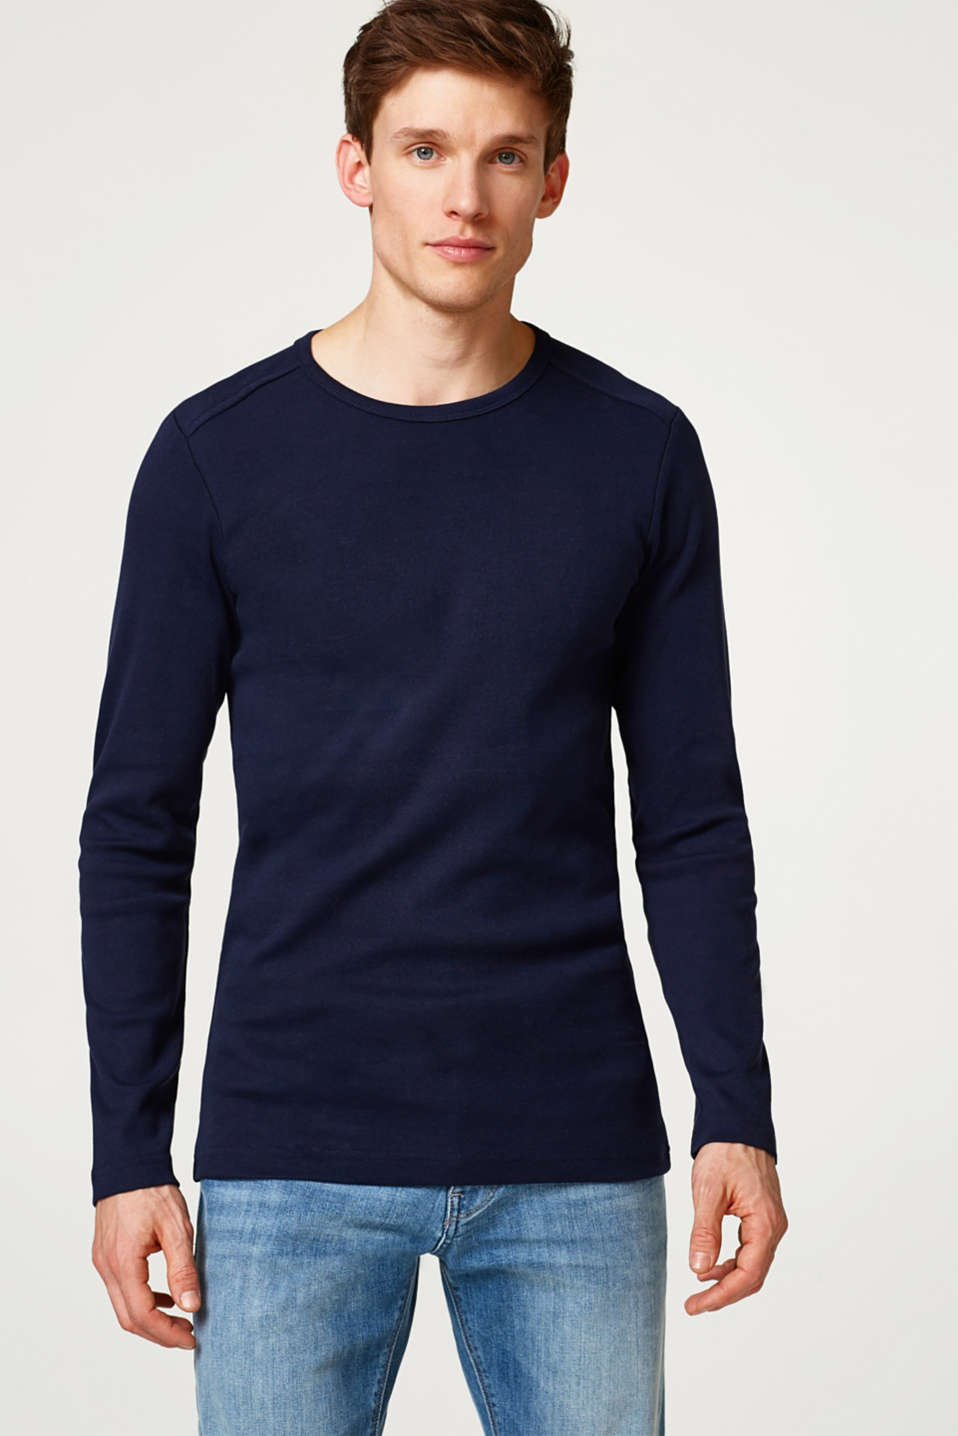 Esprit - Basic ribbed cotton long sleeve top